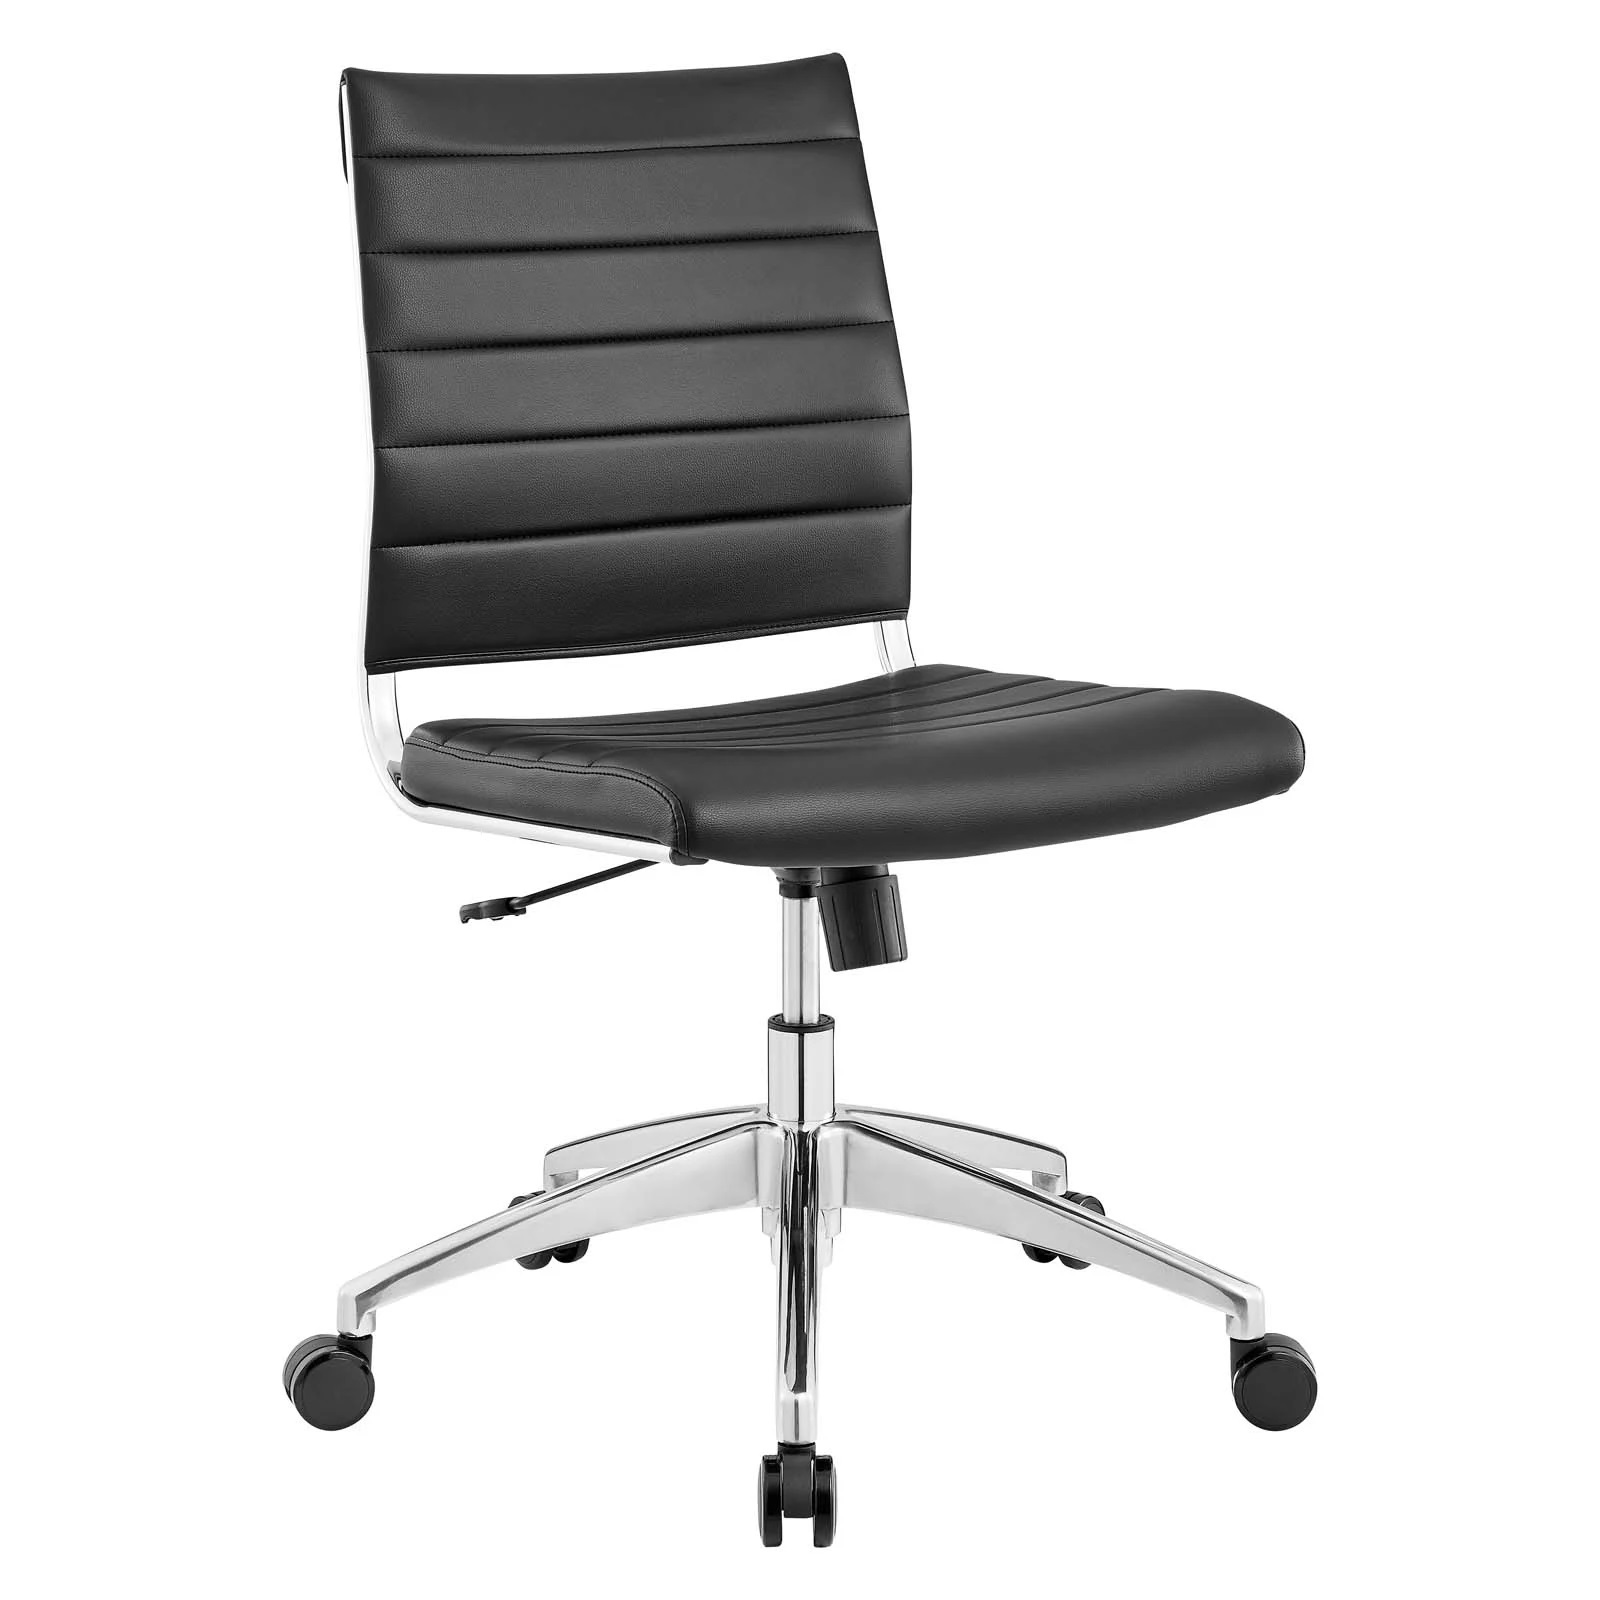 Armless Mid Back Office Chair in Black